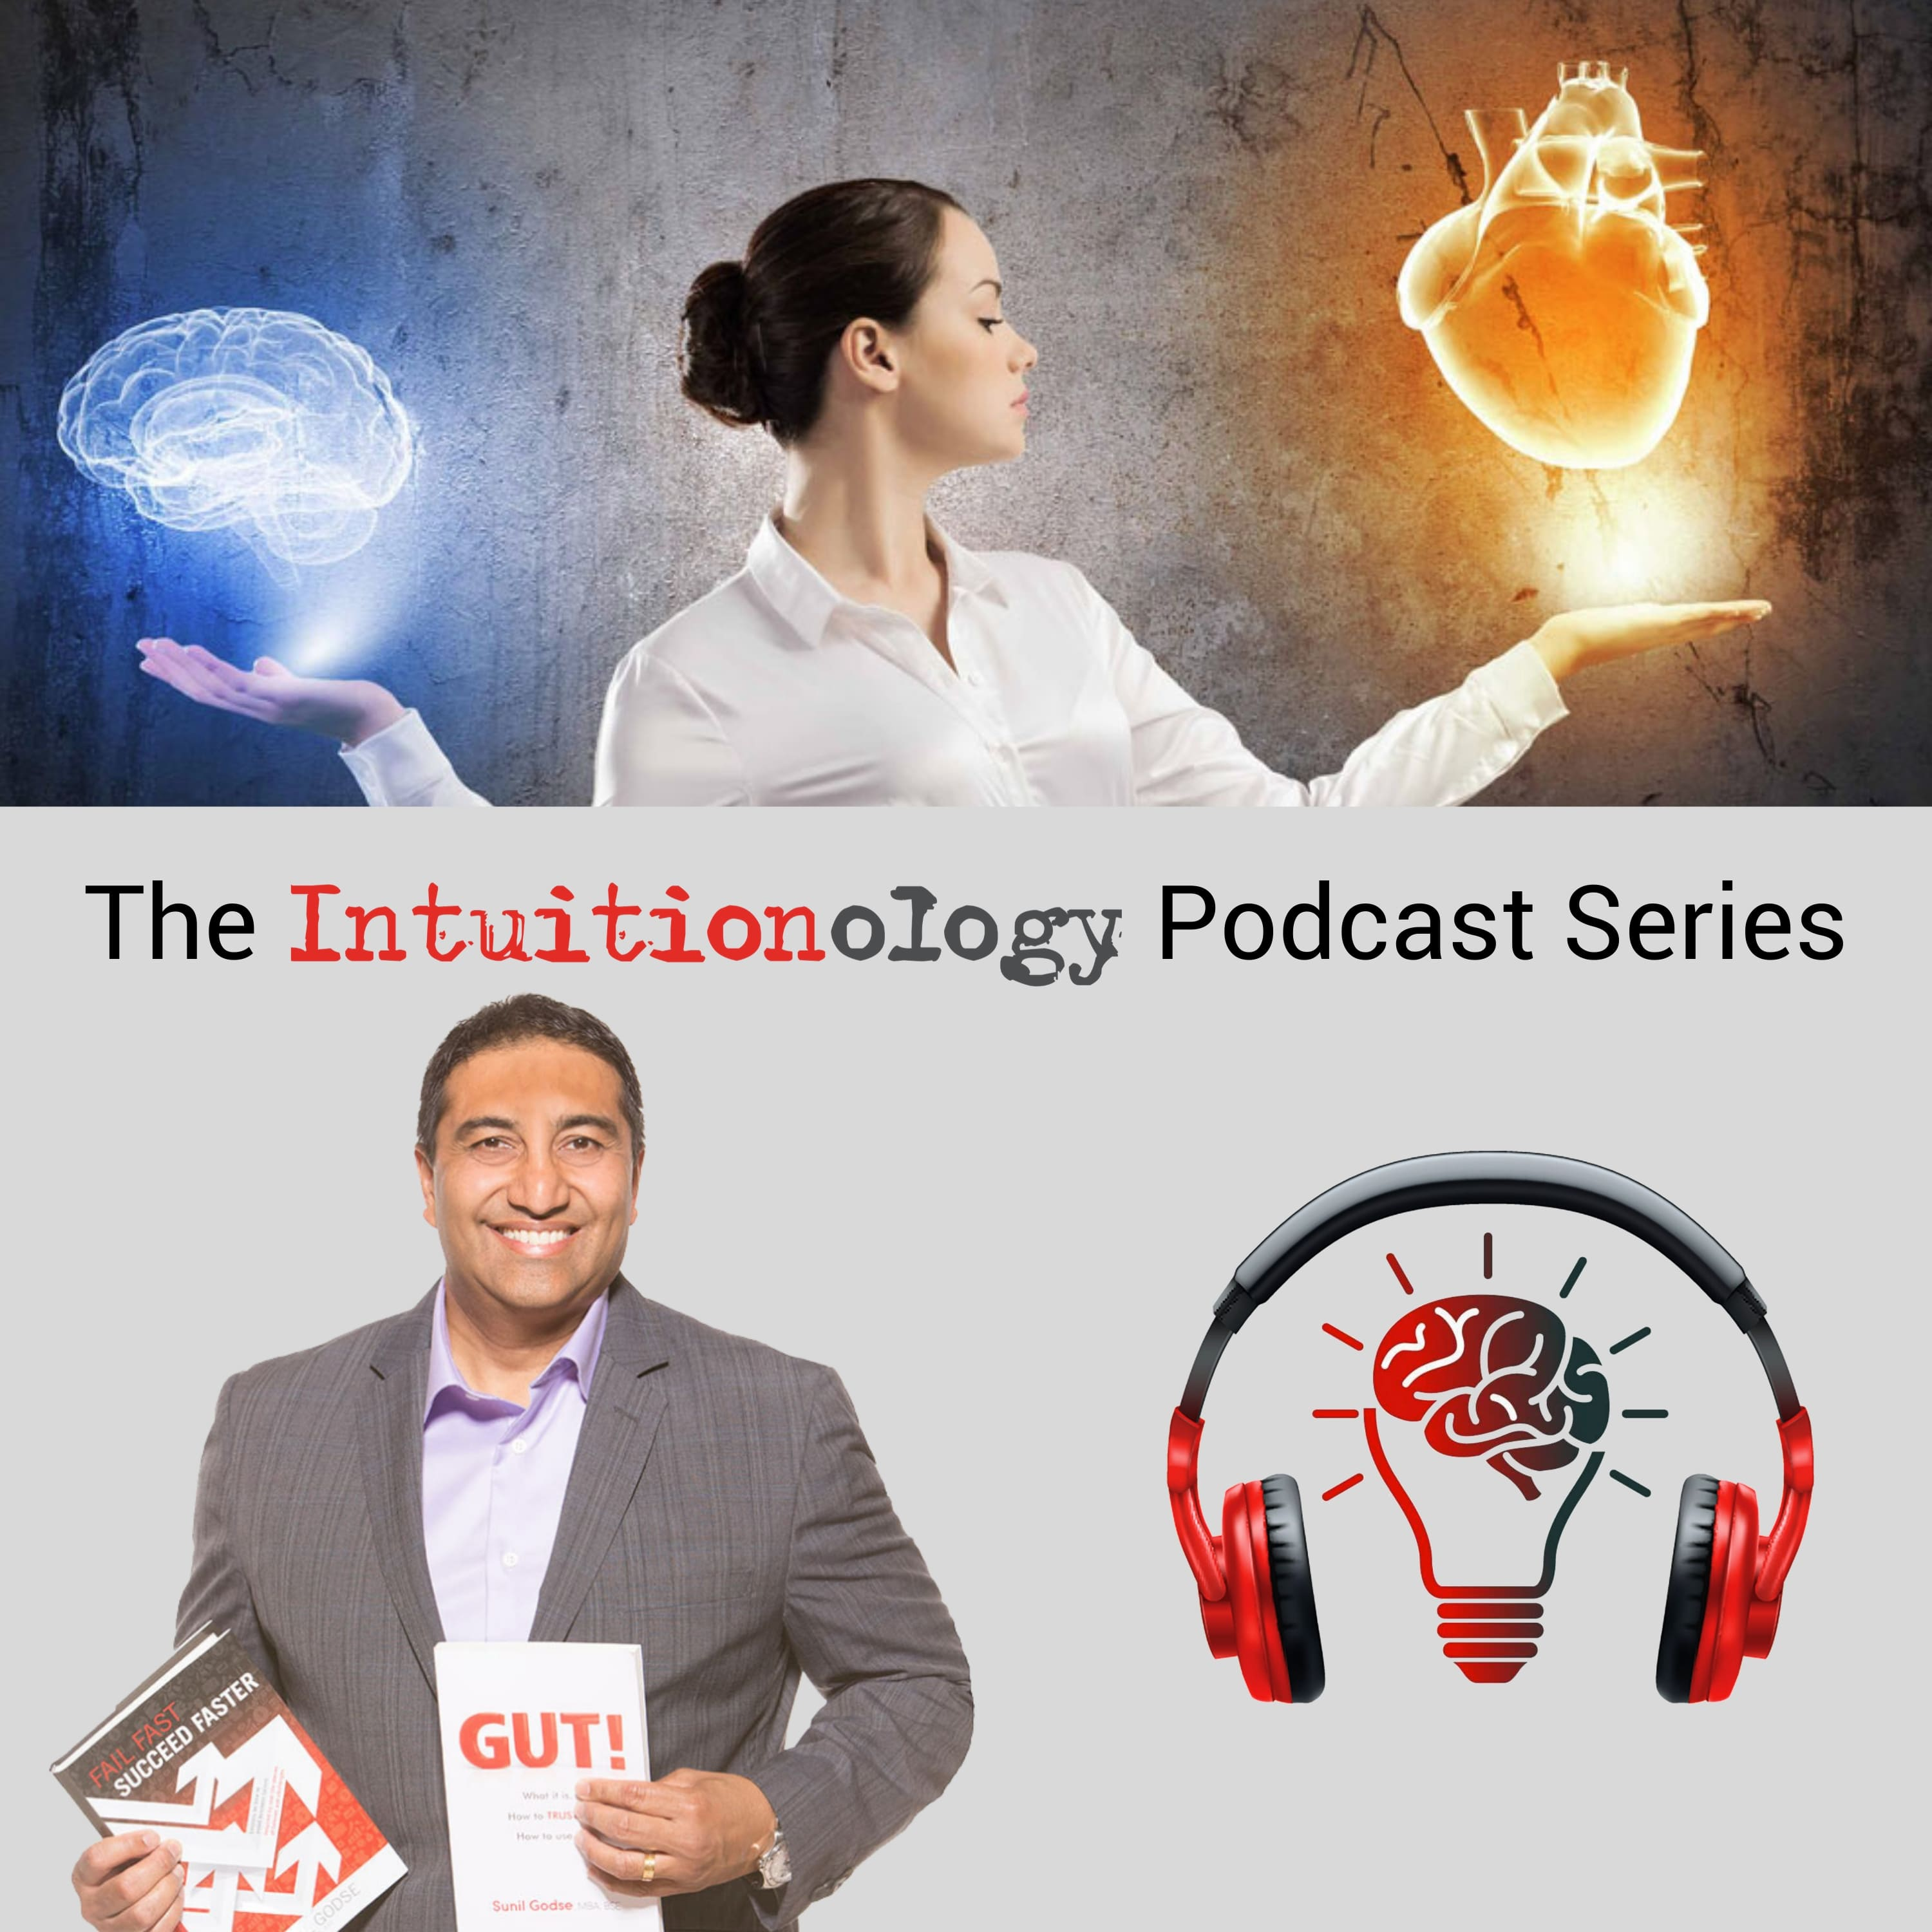 The Intuitionology Podcast Series